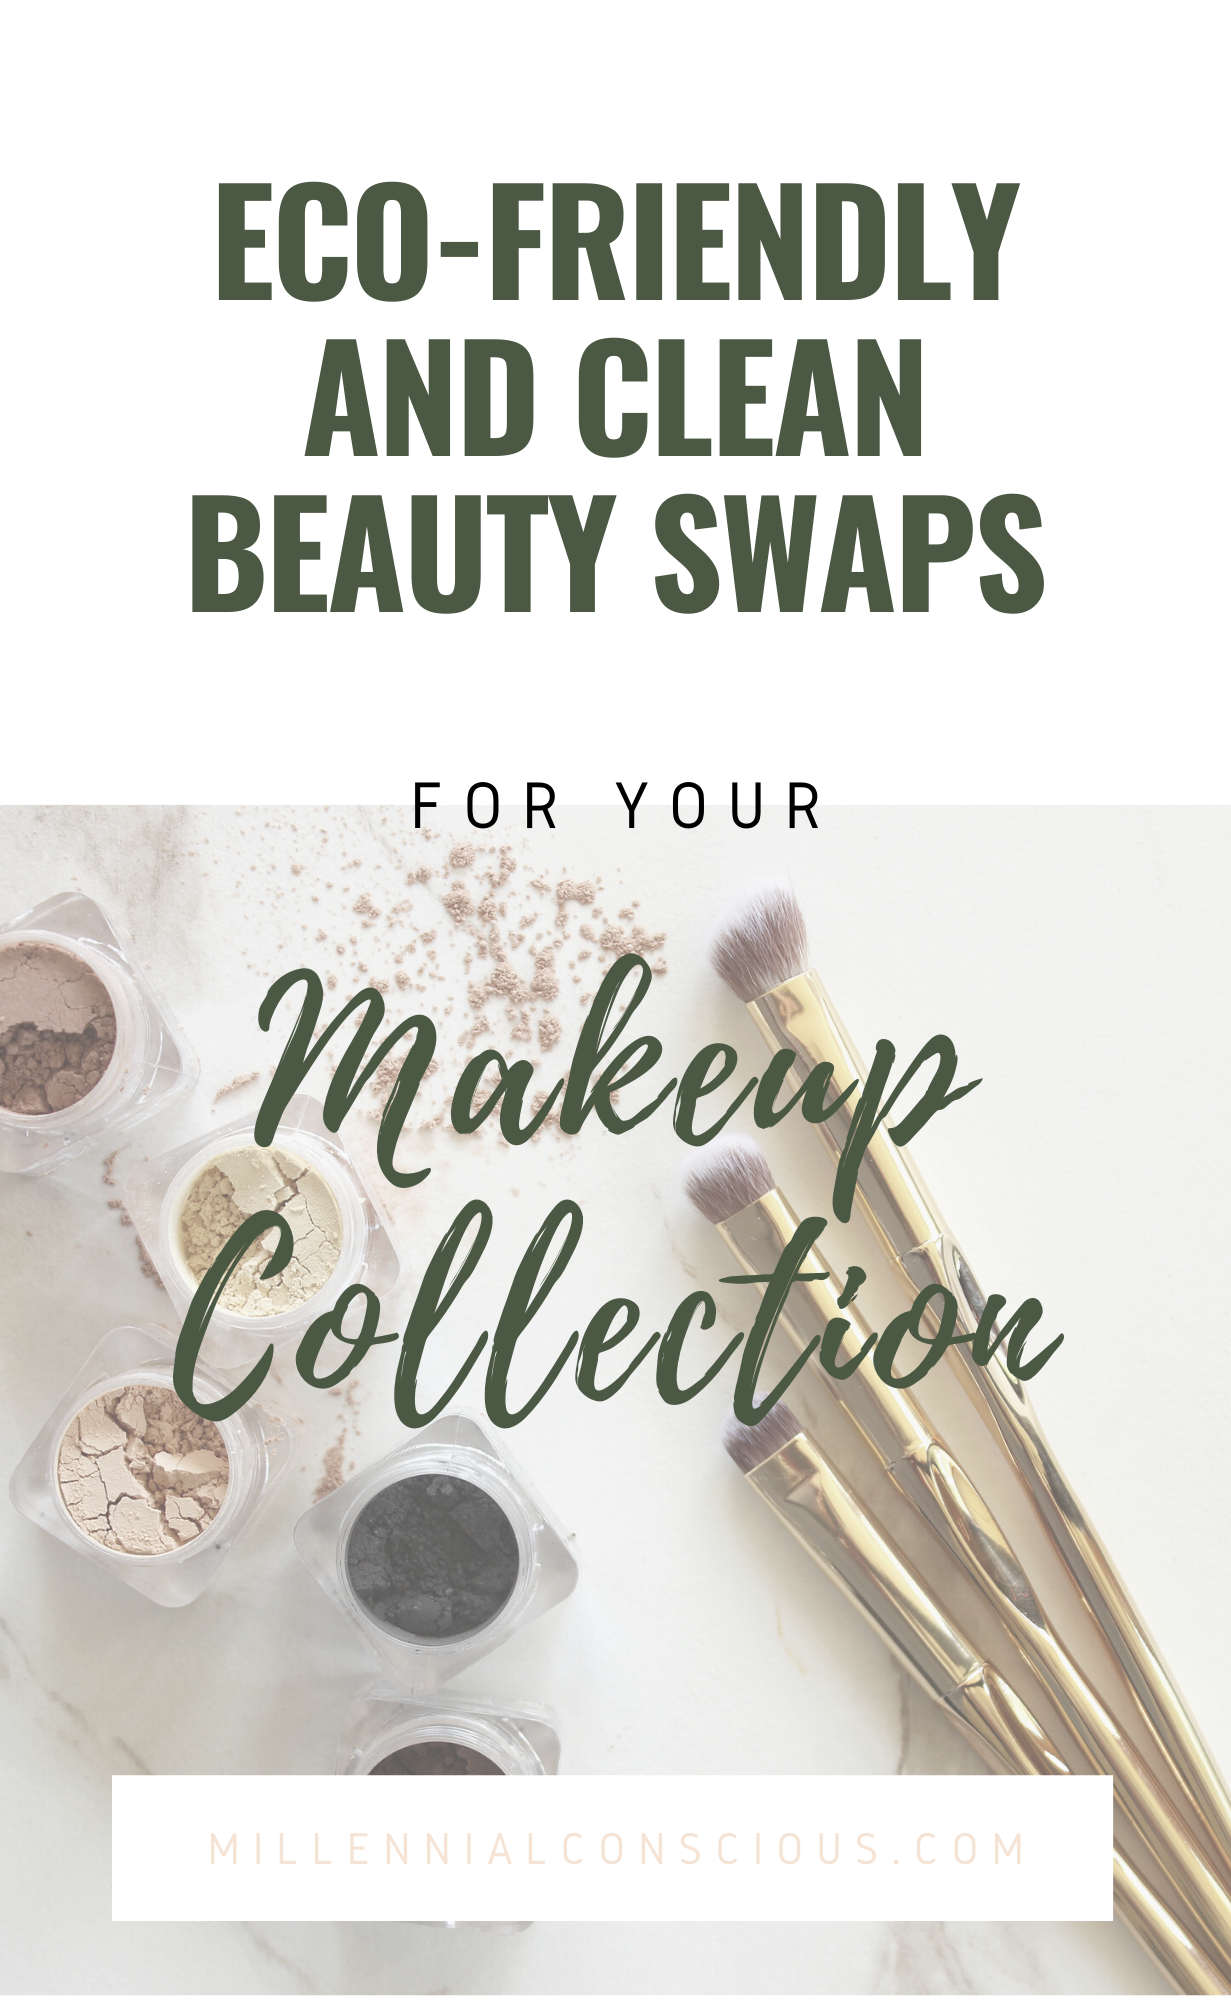 EcoFriendly and Clean Beauty Swaps For Your Makeup